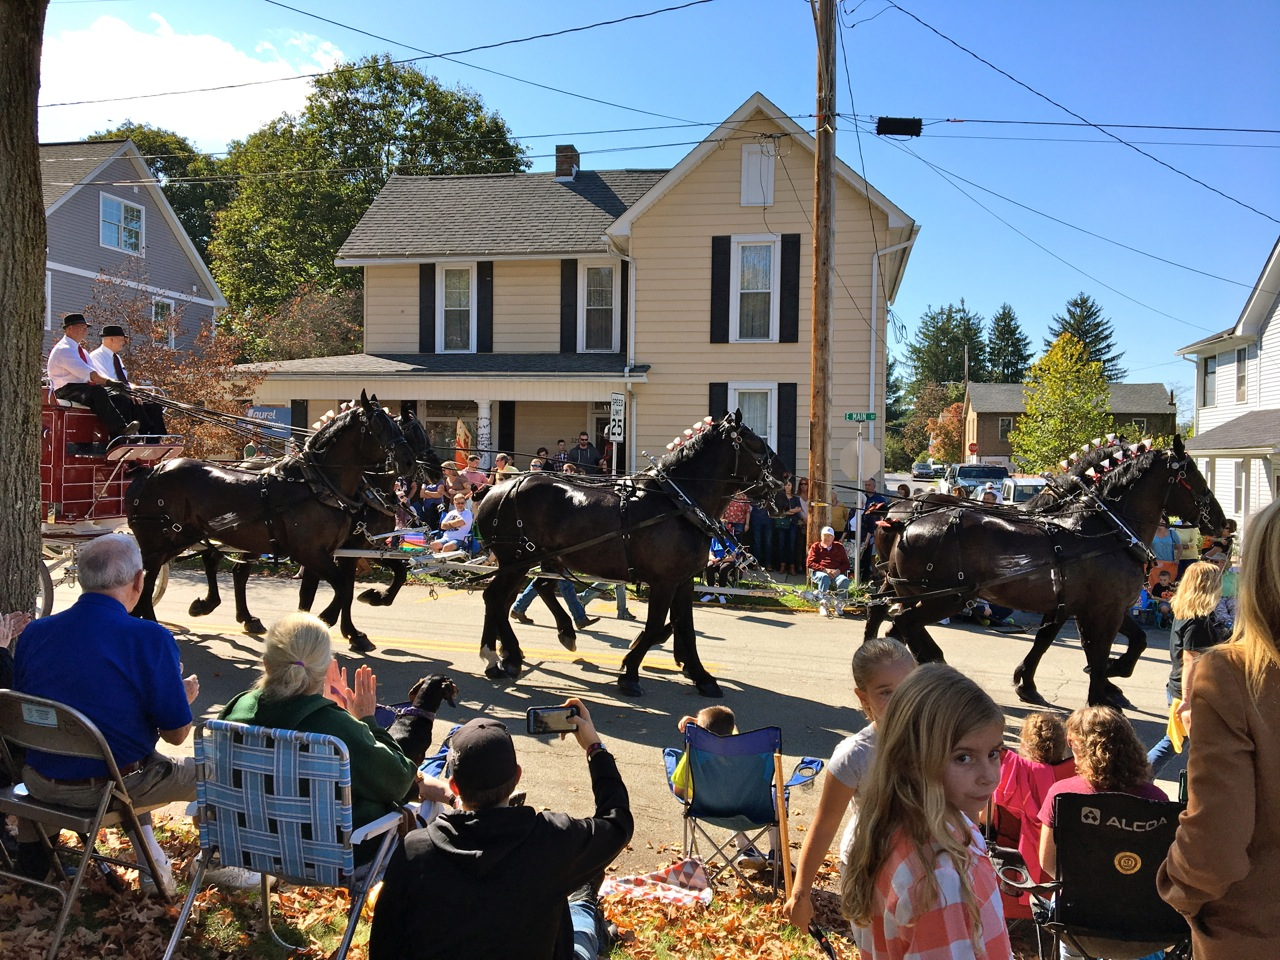 Ligonier Days October 2017